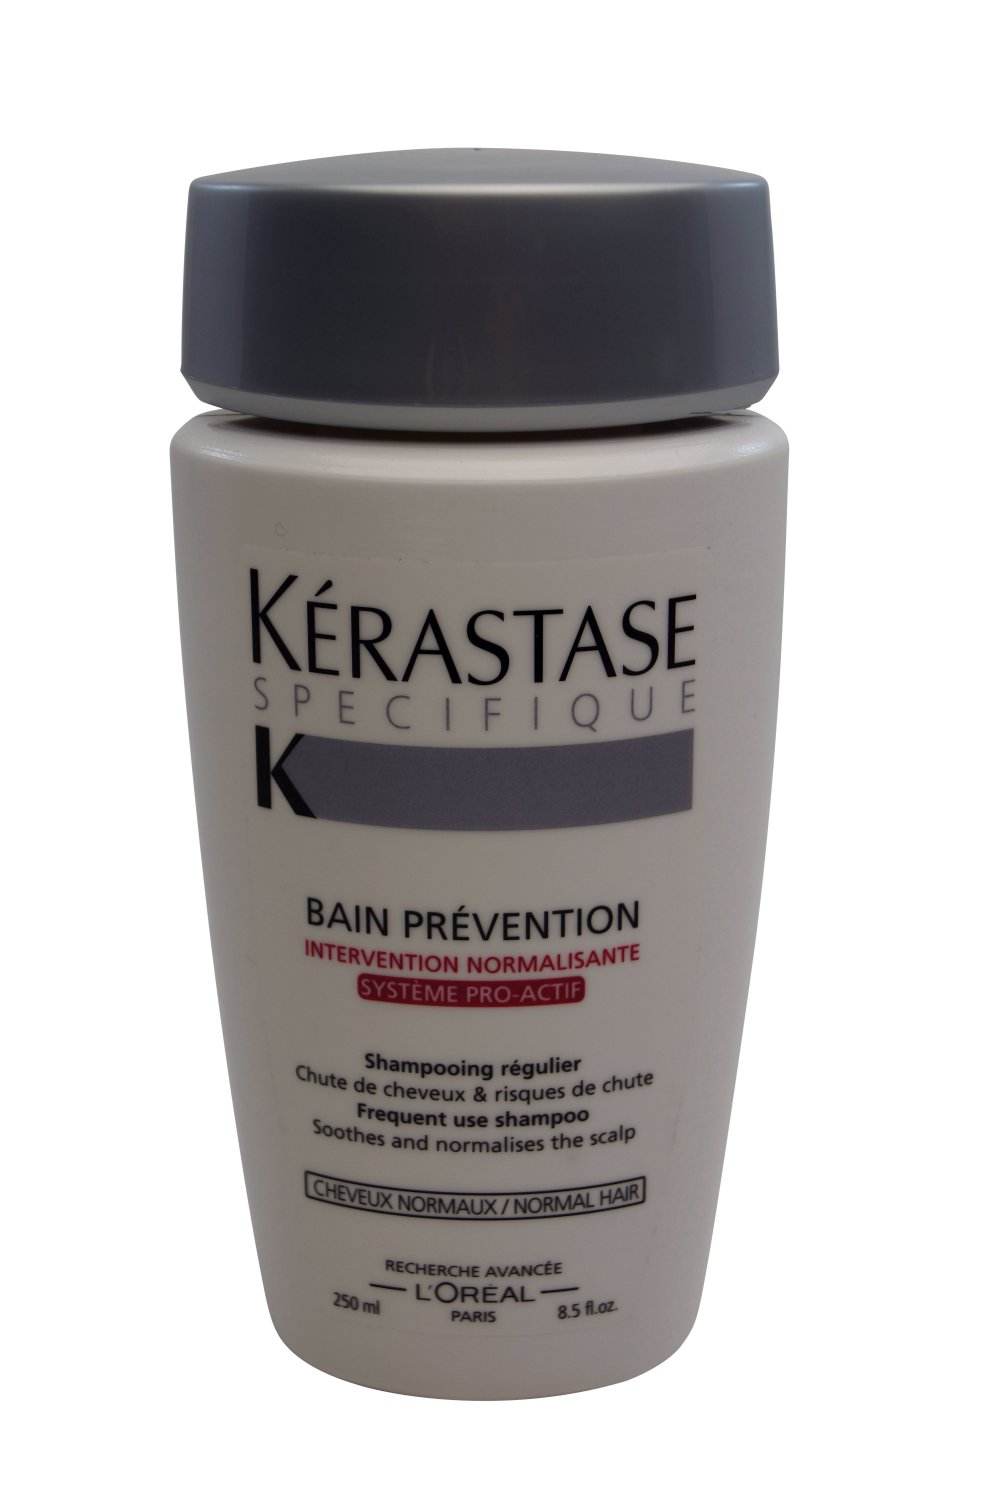 Kerastase Specifique Bain Prevention System Pro Actif for Normal Hair 8.5 oz